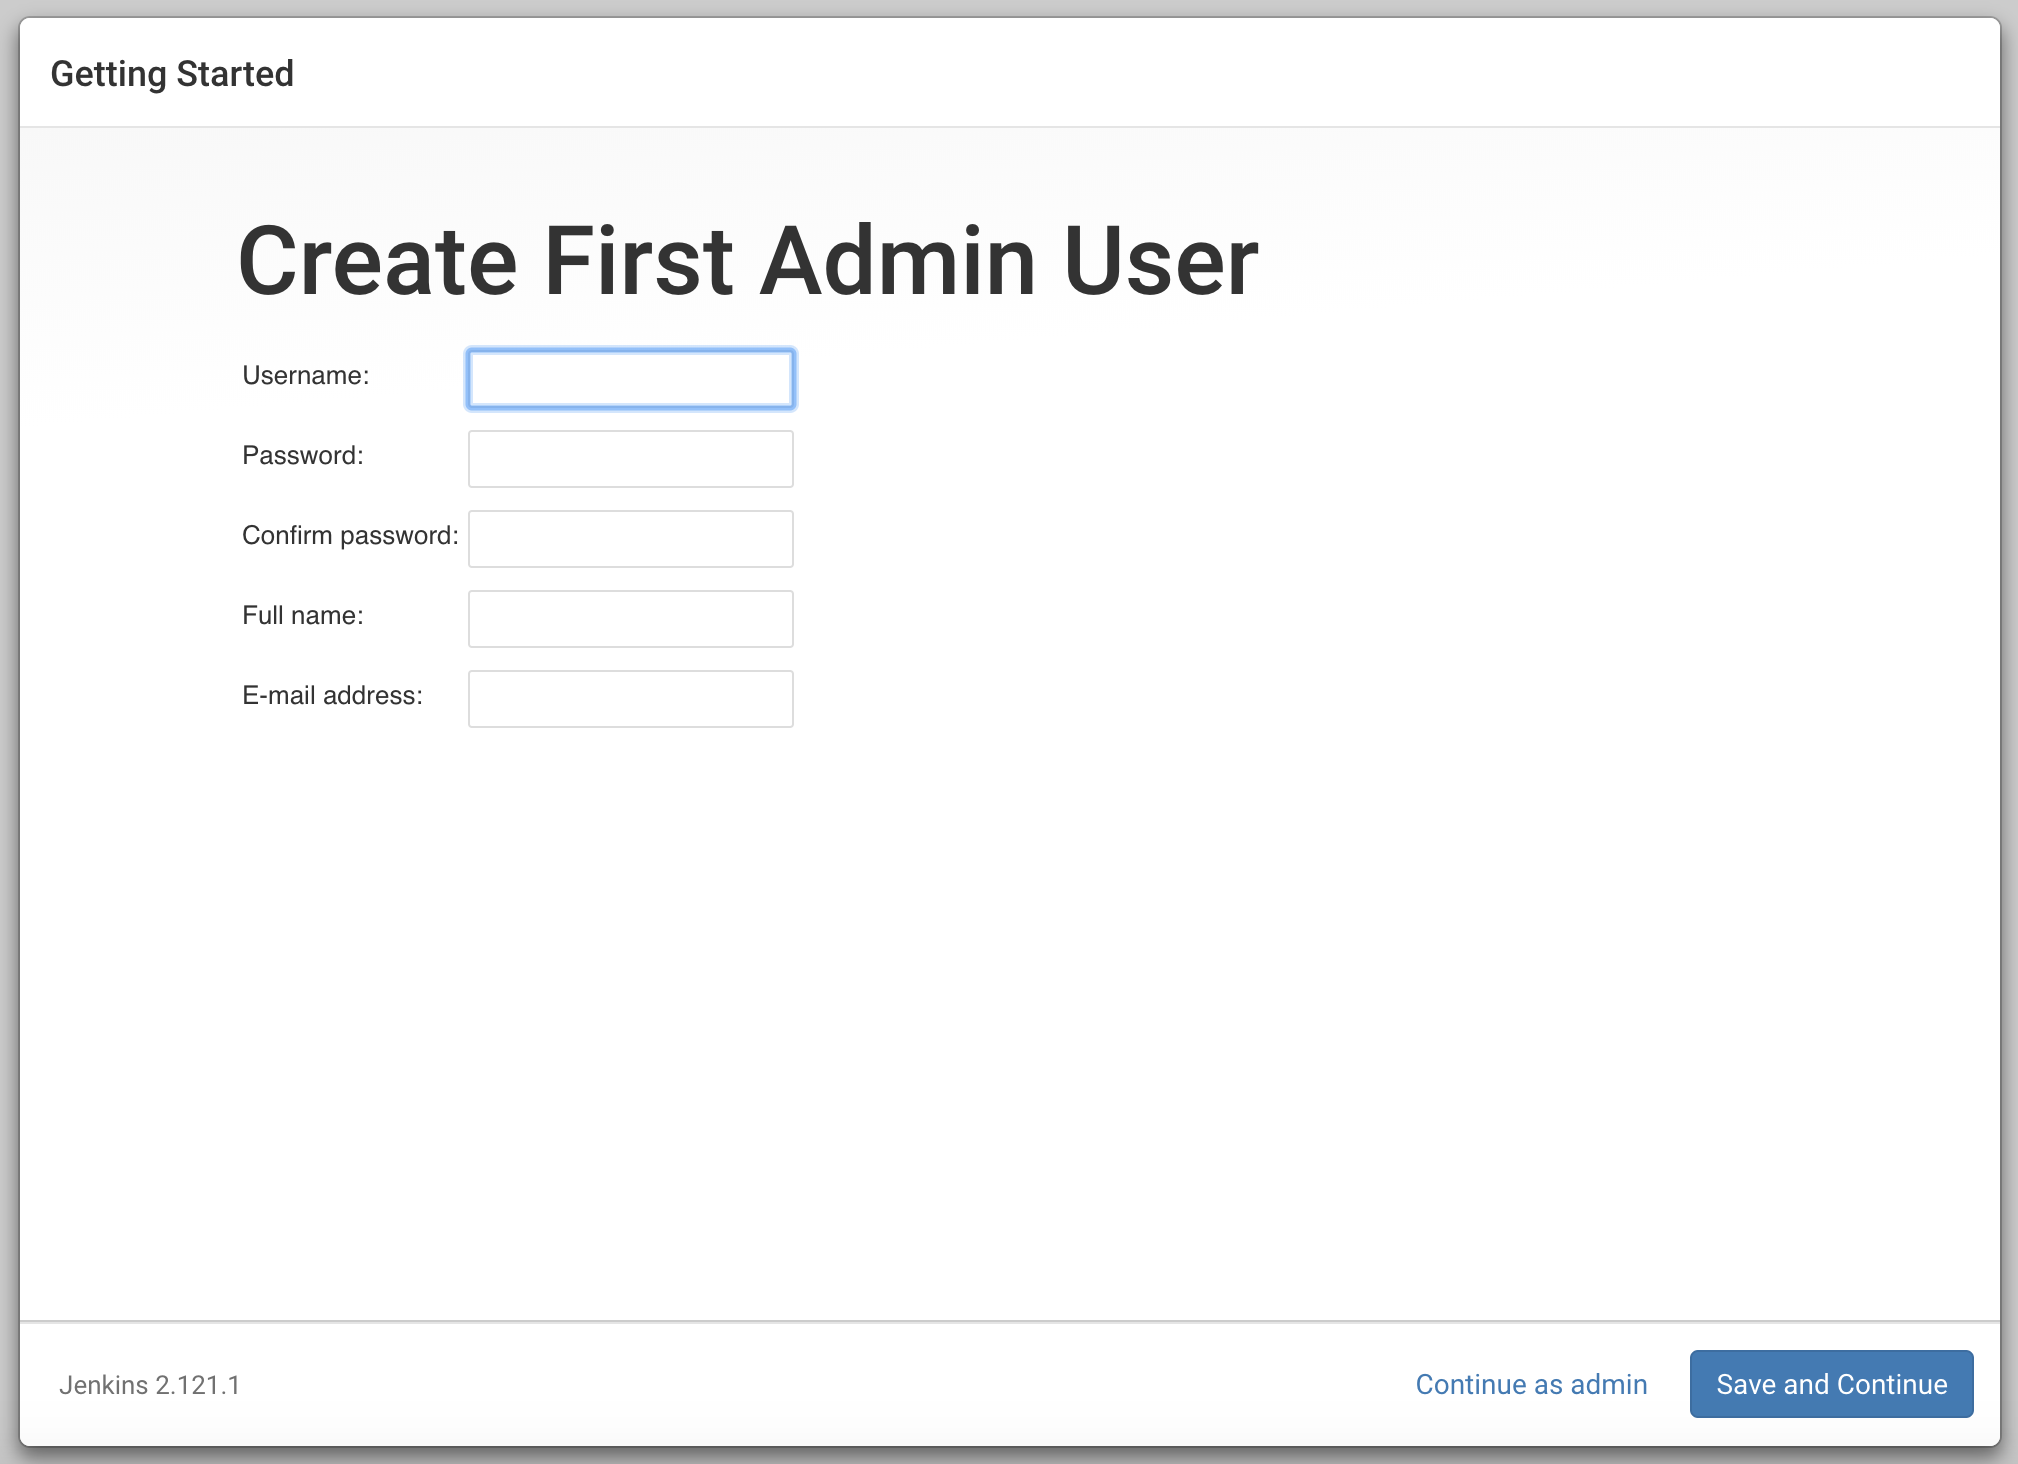 Pantalla Create First Admin User de Jenkins